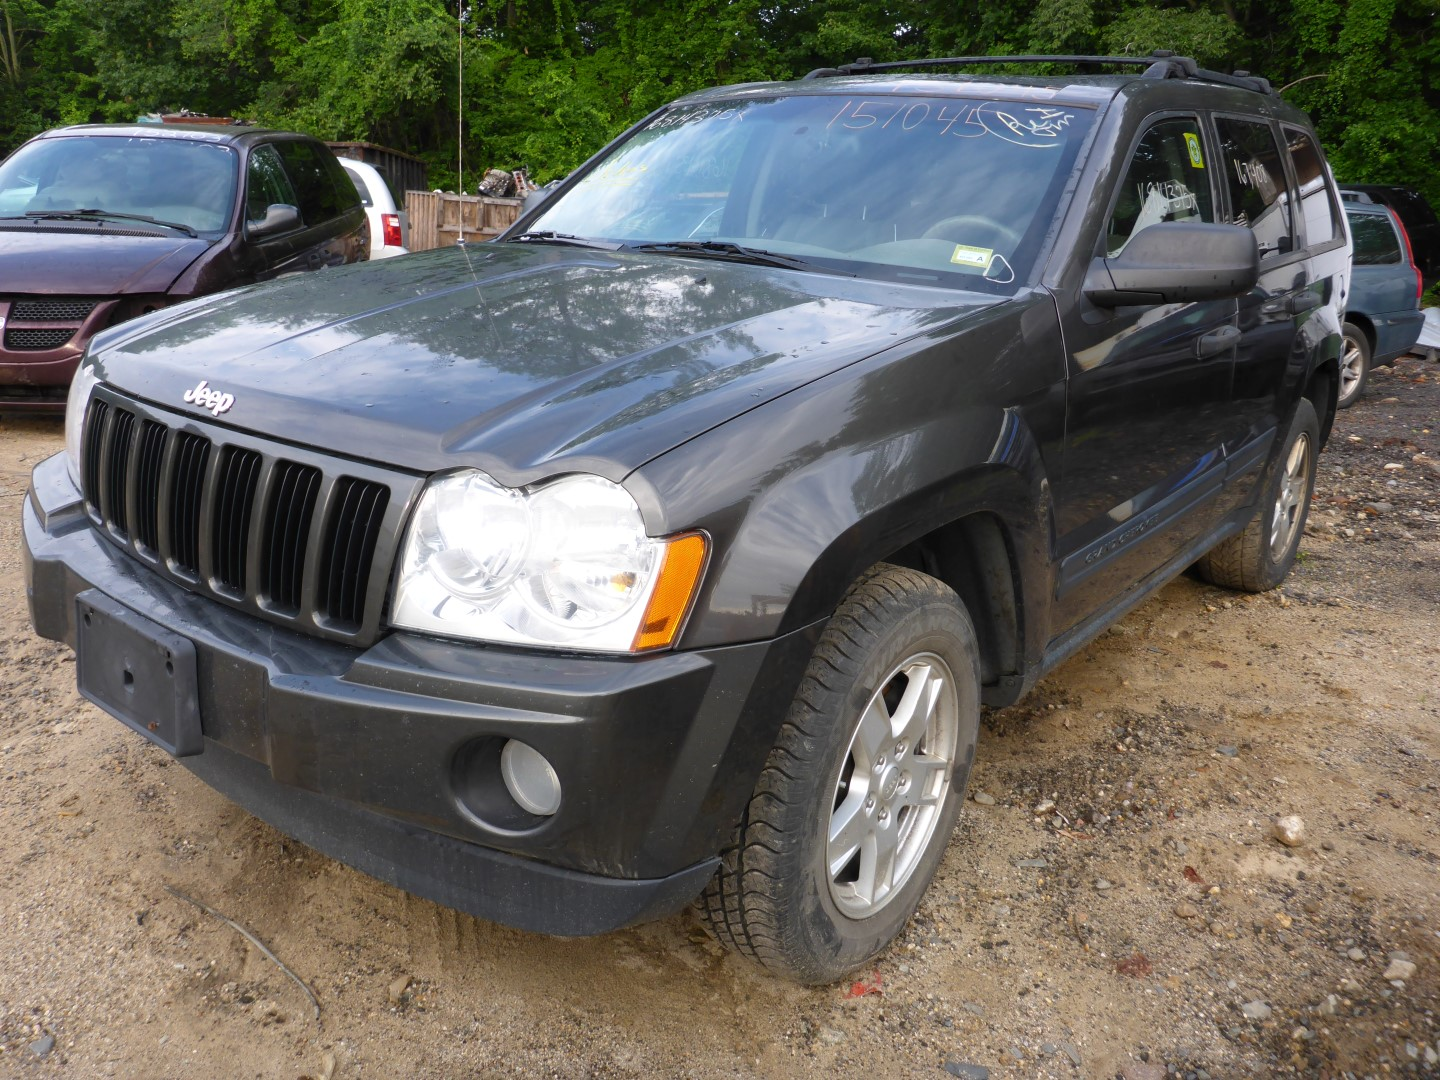 hight resolution of this jeep grand cherokee has a 3 7l v6 sohc 12v engine and a 5 speed automatic overdrive transmission if you need parts from this grand cherokee laredo 4wd